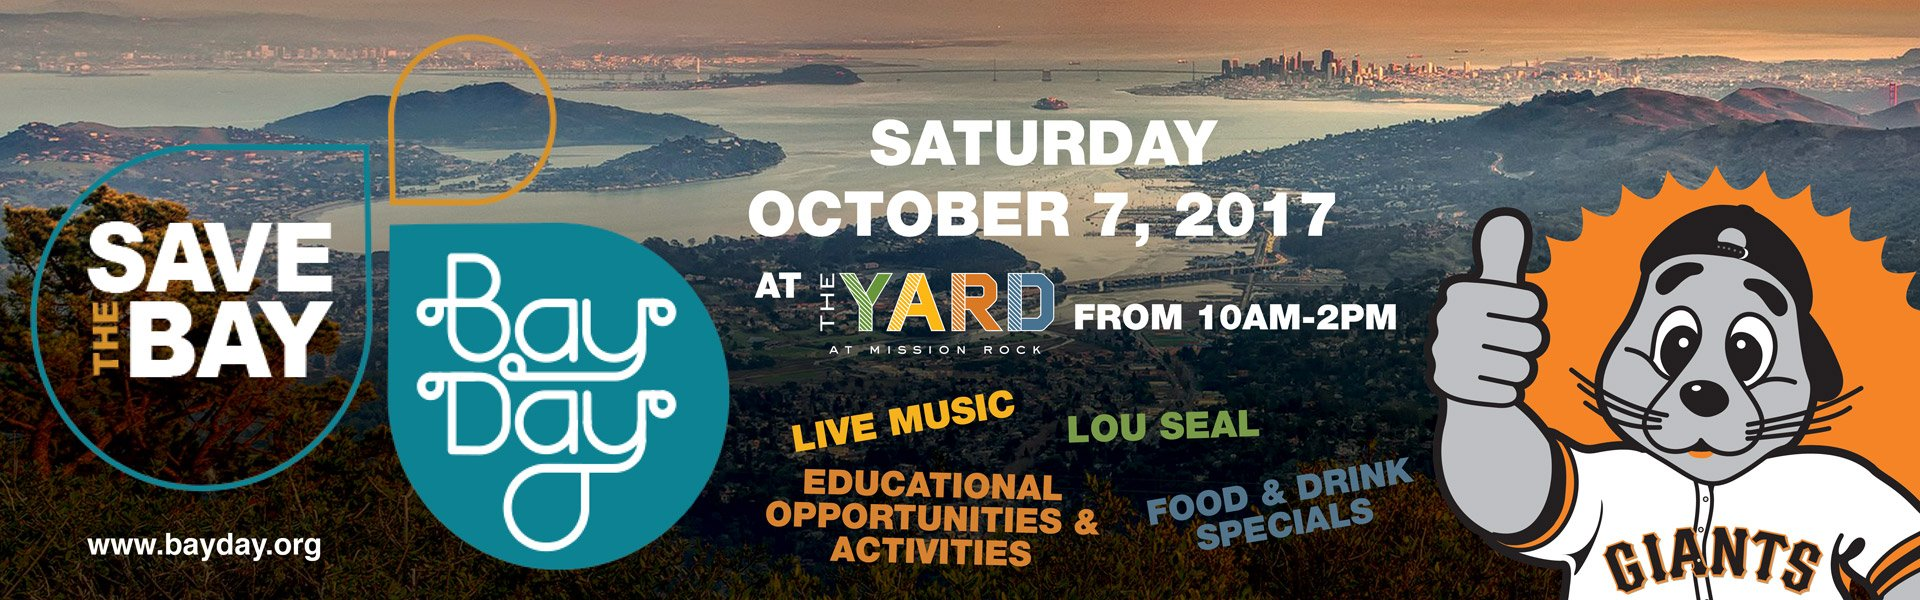 TOMORROW! Celebrate Bay Day 2017 at @TheYardSF  �� https://t.co/T95y61dRtL https://t.co/50kmqTVEU0